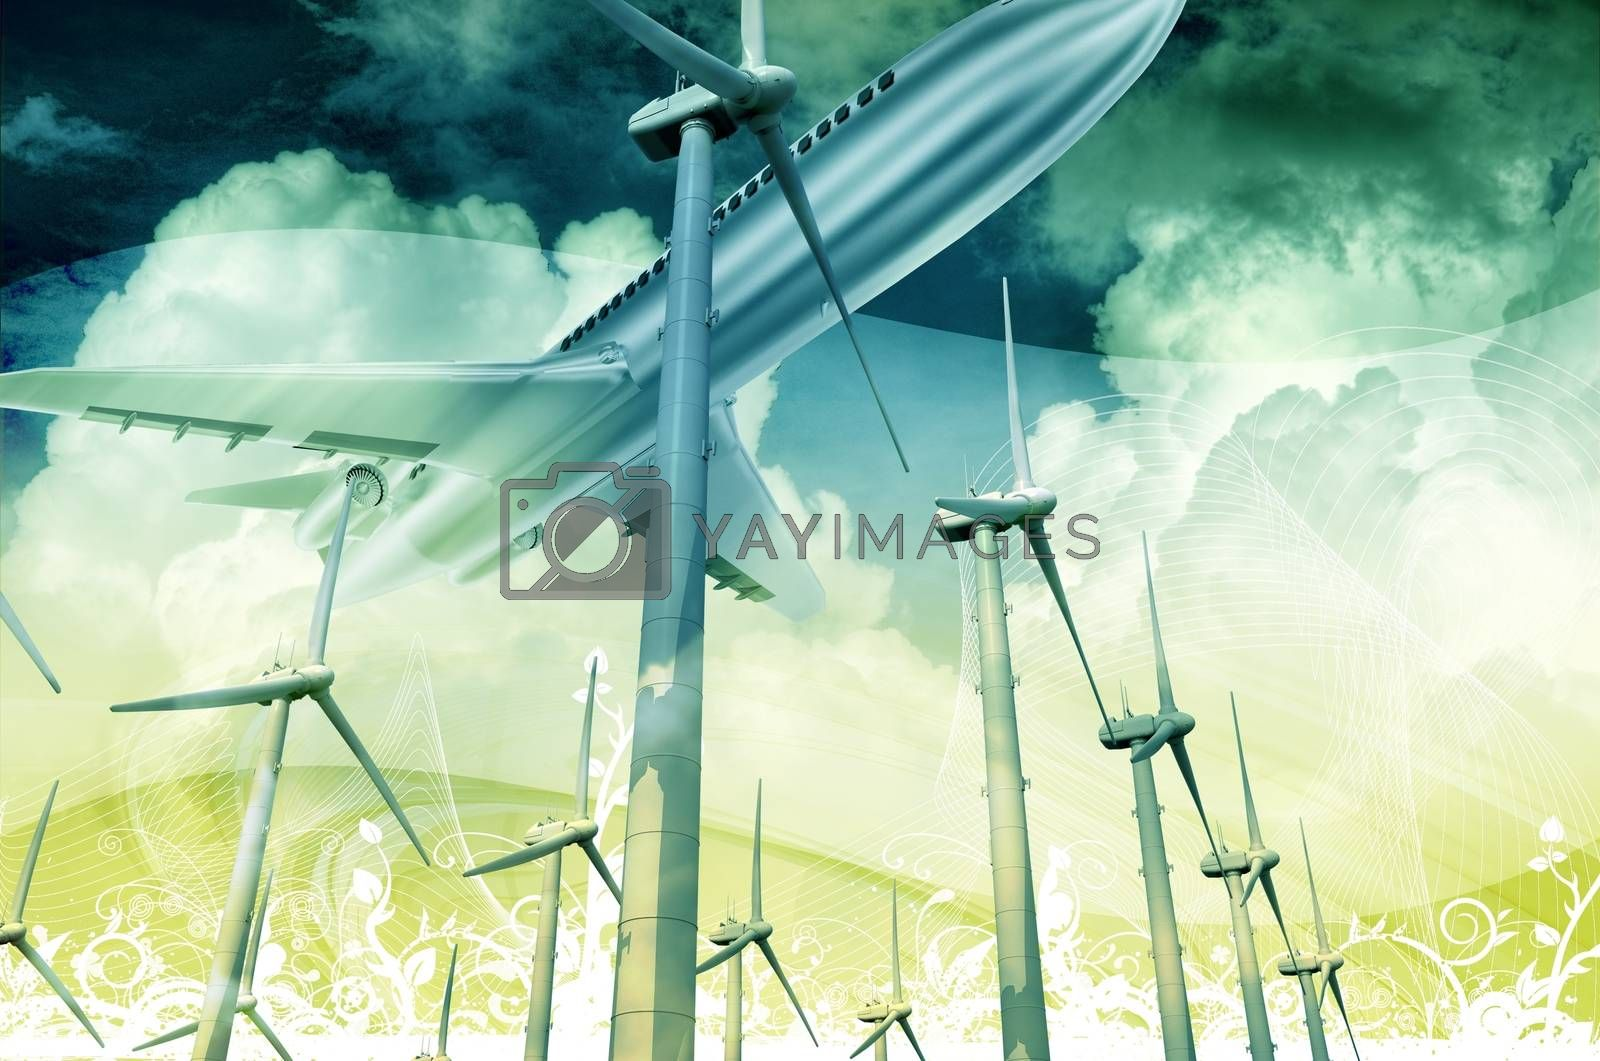 Technology of the Future. Air Transportation and Alternative Energy Technologies. 3D Render Illustration with Floral Ornaments.